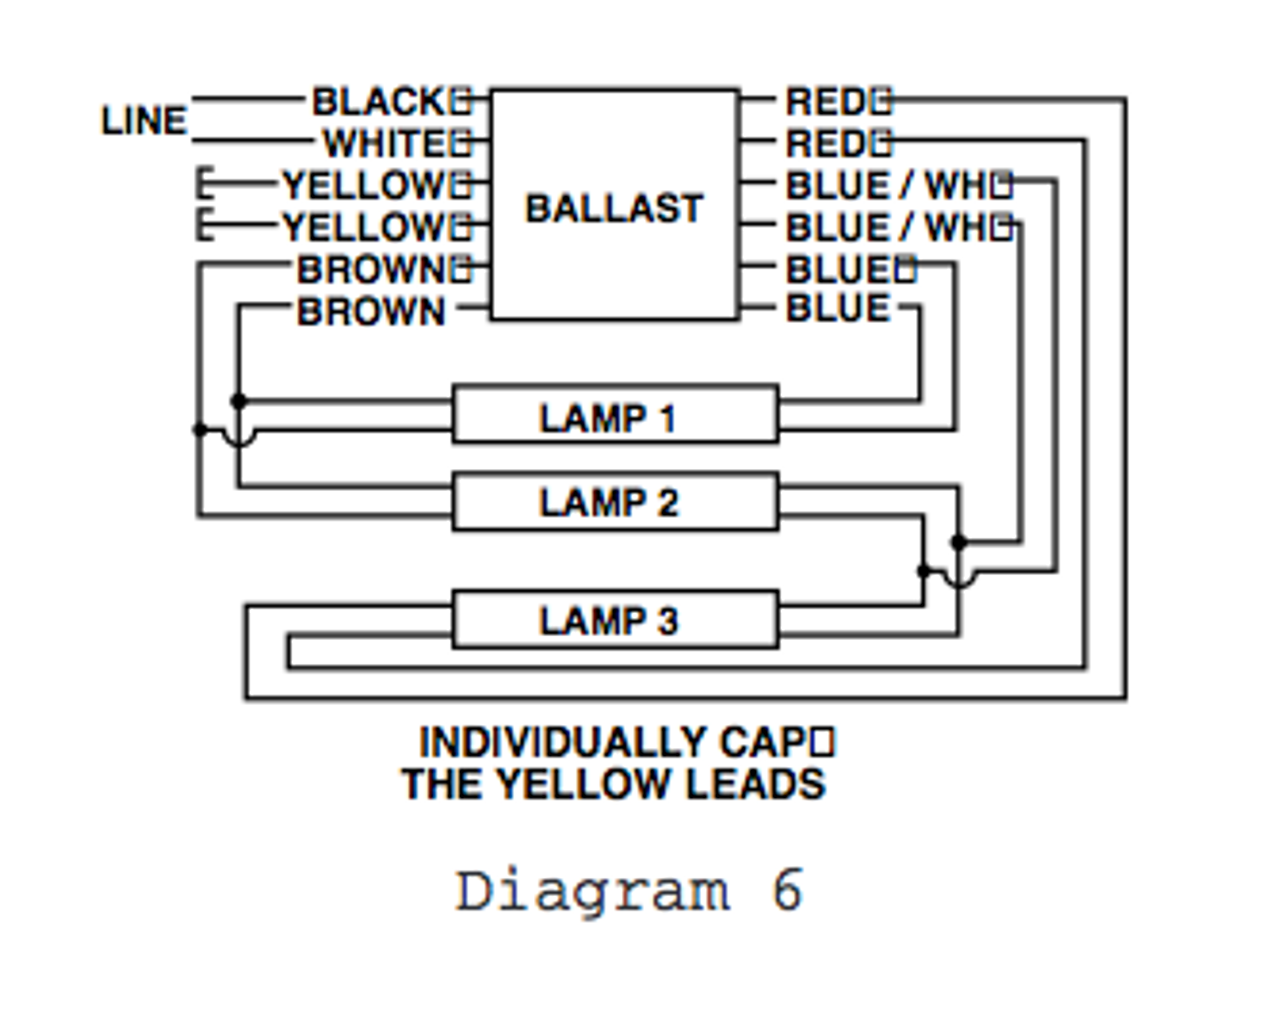 Universal 256-448-800 T12HO Magnetic Sign Ballast on cfl ballast circuit diagram, 0-10v dimming led diagram, emergency standby ballast, emergency light switch panel, backup battery ballast fluorescent diagram, emergency ballast installation, emergency exit cobra controls wire diagram, light circuit diagram, refrigerator parts diagram, fluorescent fixtures t5 circuit diagram, electronic ballast circuit diagram, emergency ballast circuit, emergency battery ballast wiring, emergency ballast troubleshooting,